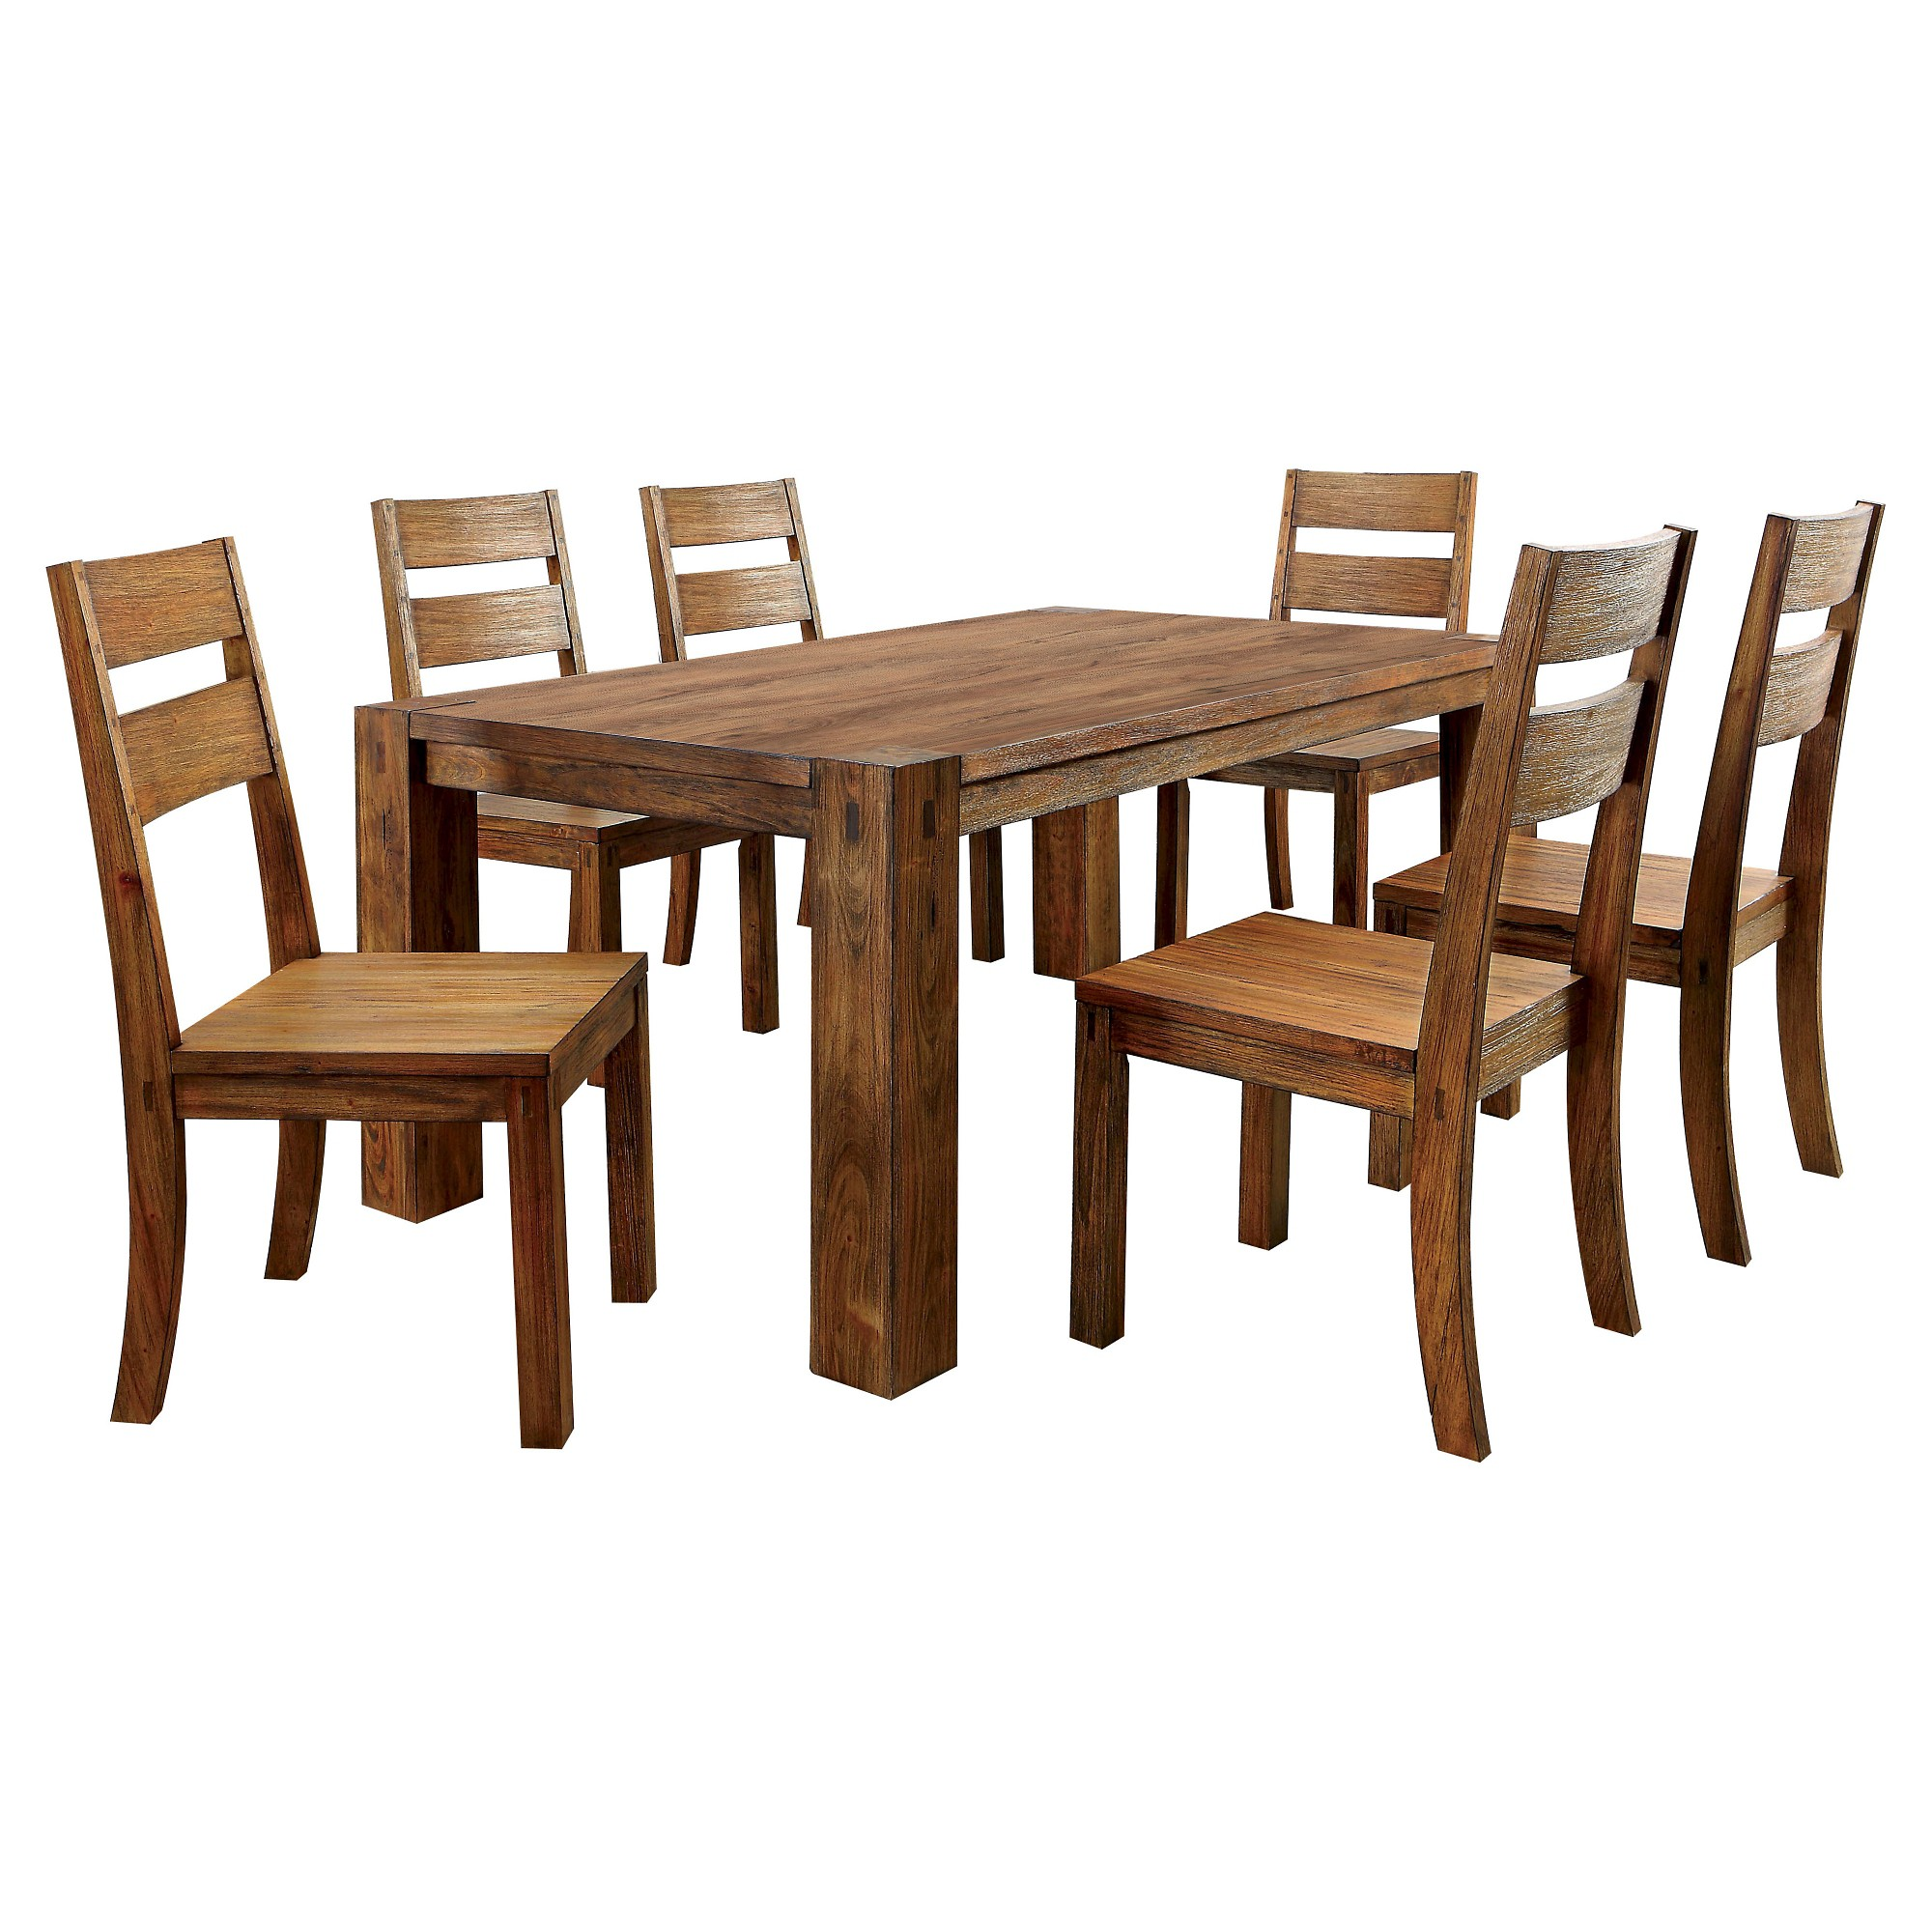 Awe Inspiring Sun Pine 7Pc Sturdy Dining Table Set Wood Dark Oak Dark Gmtry Best Dining Table And Chair Ideas Images Gmtryco